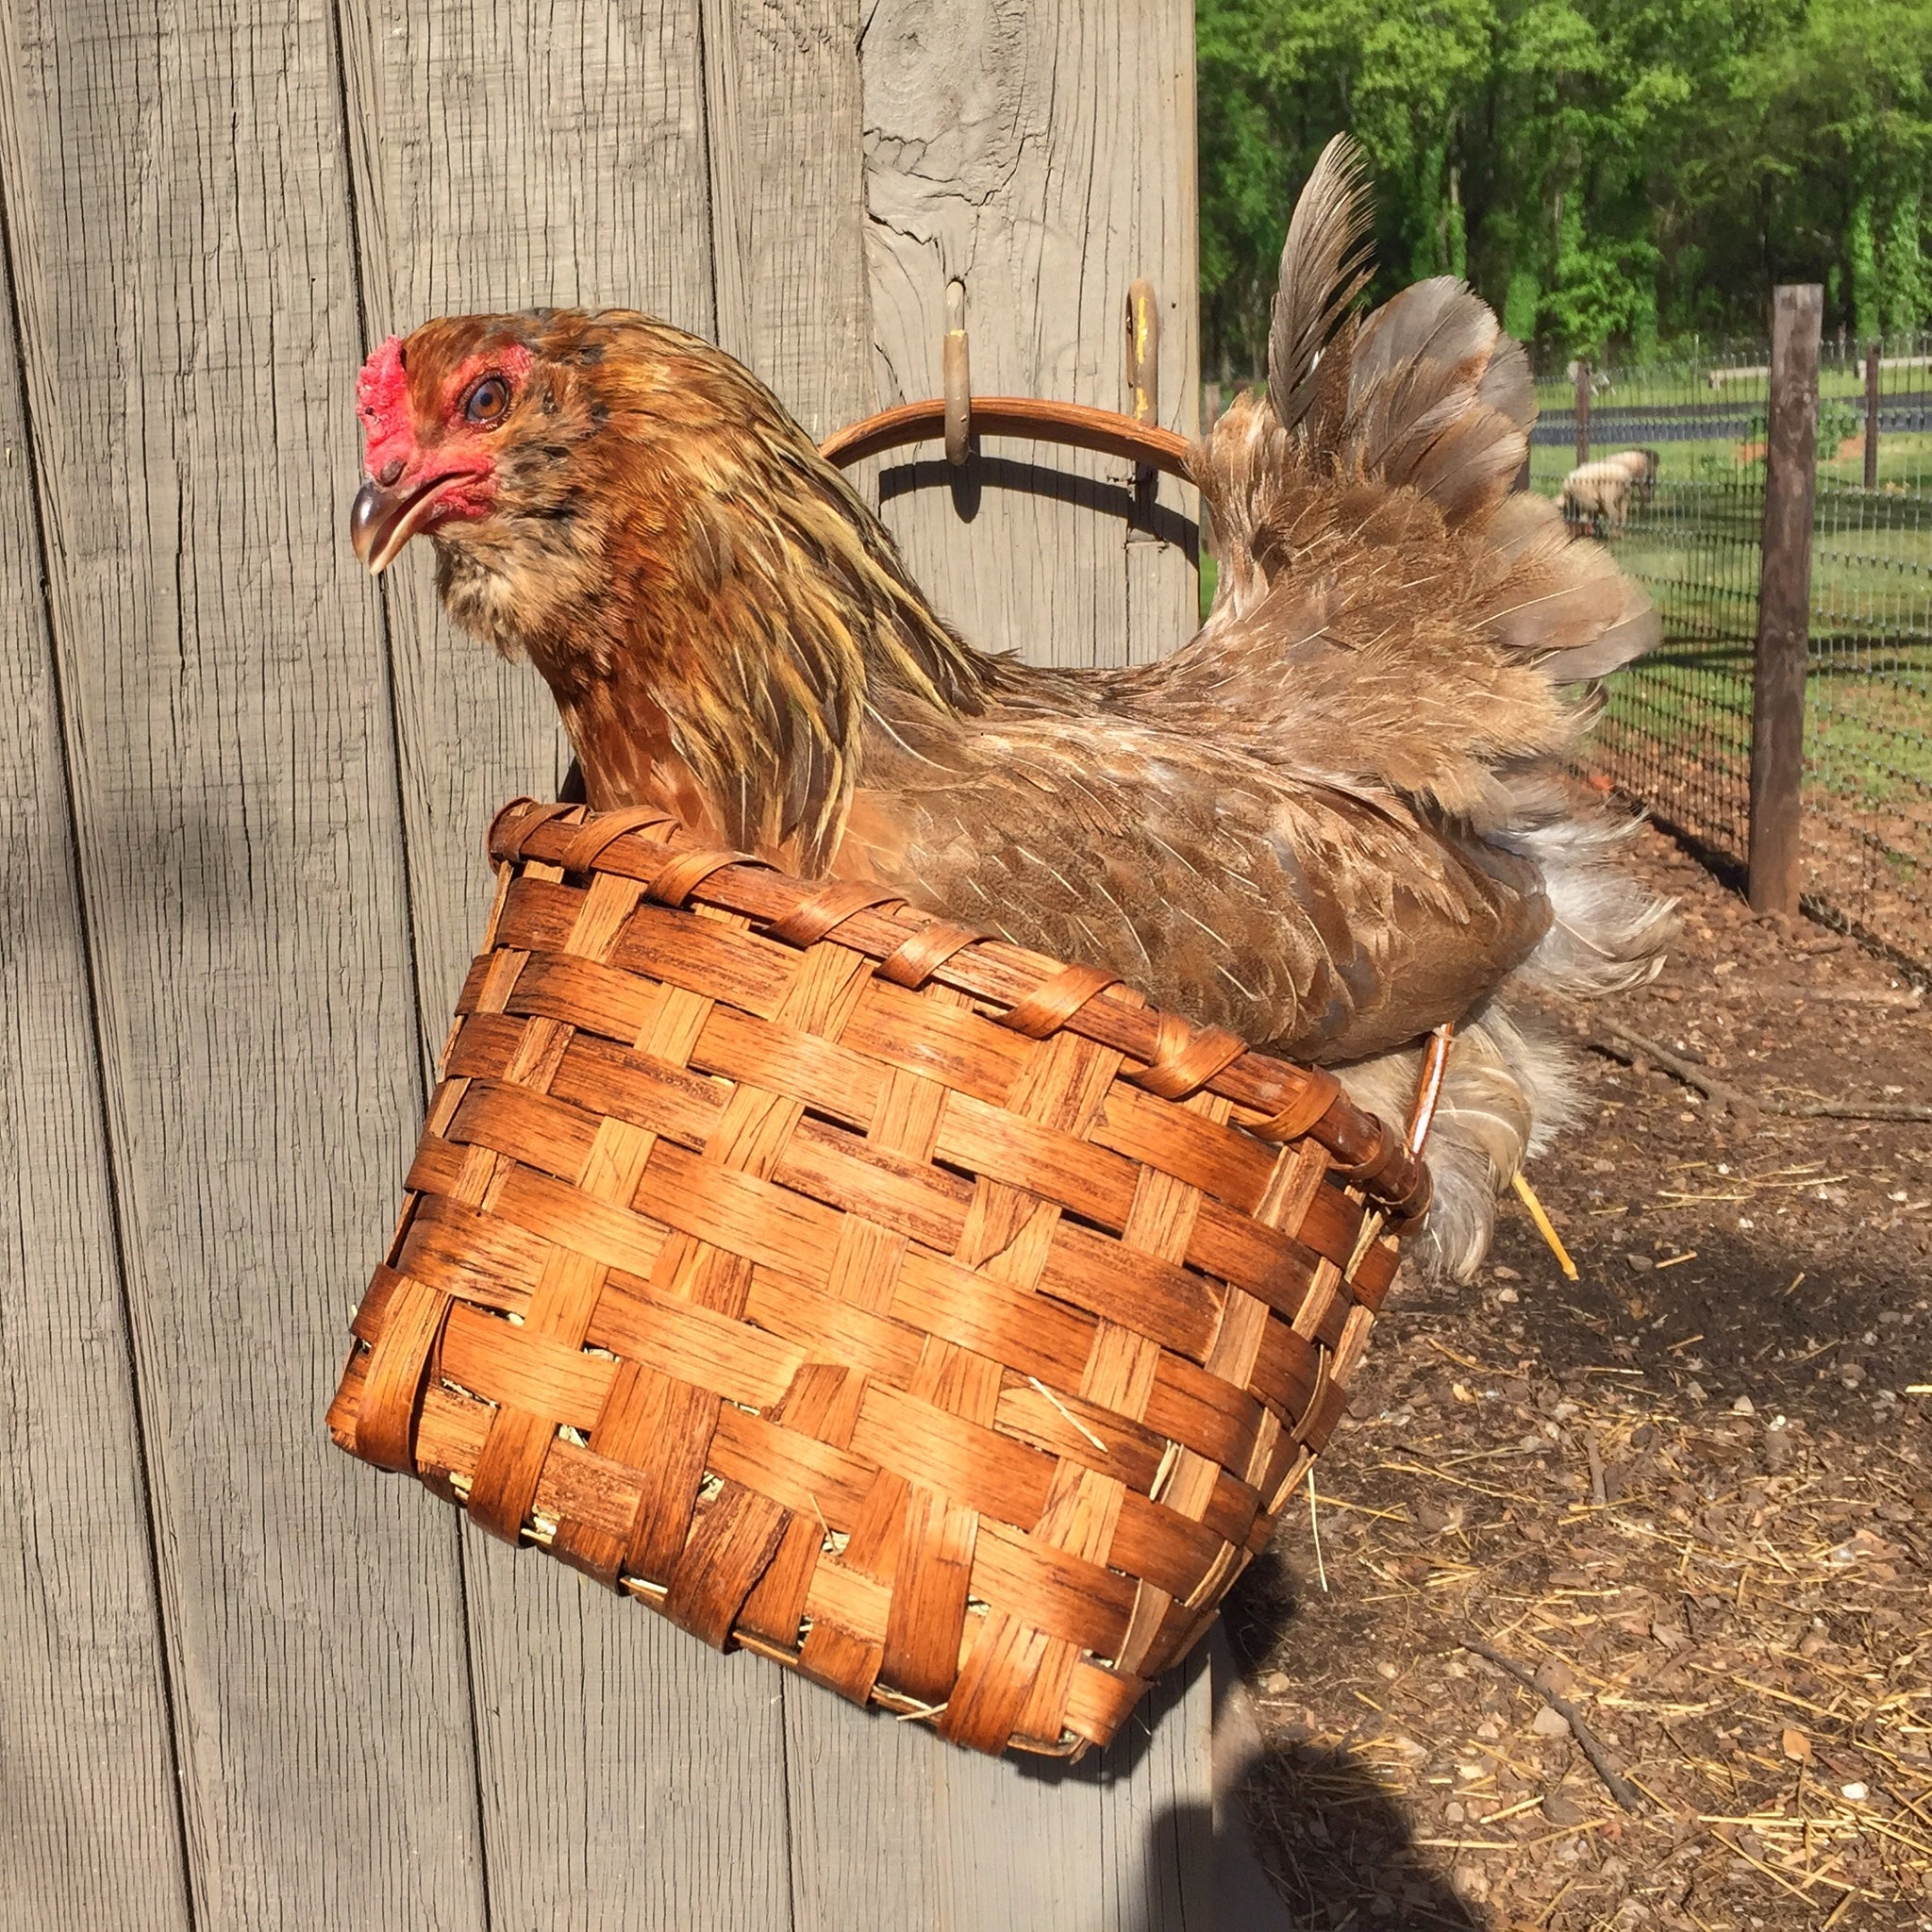 Tour the 1818 Farms Chicken Coop